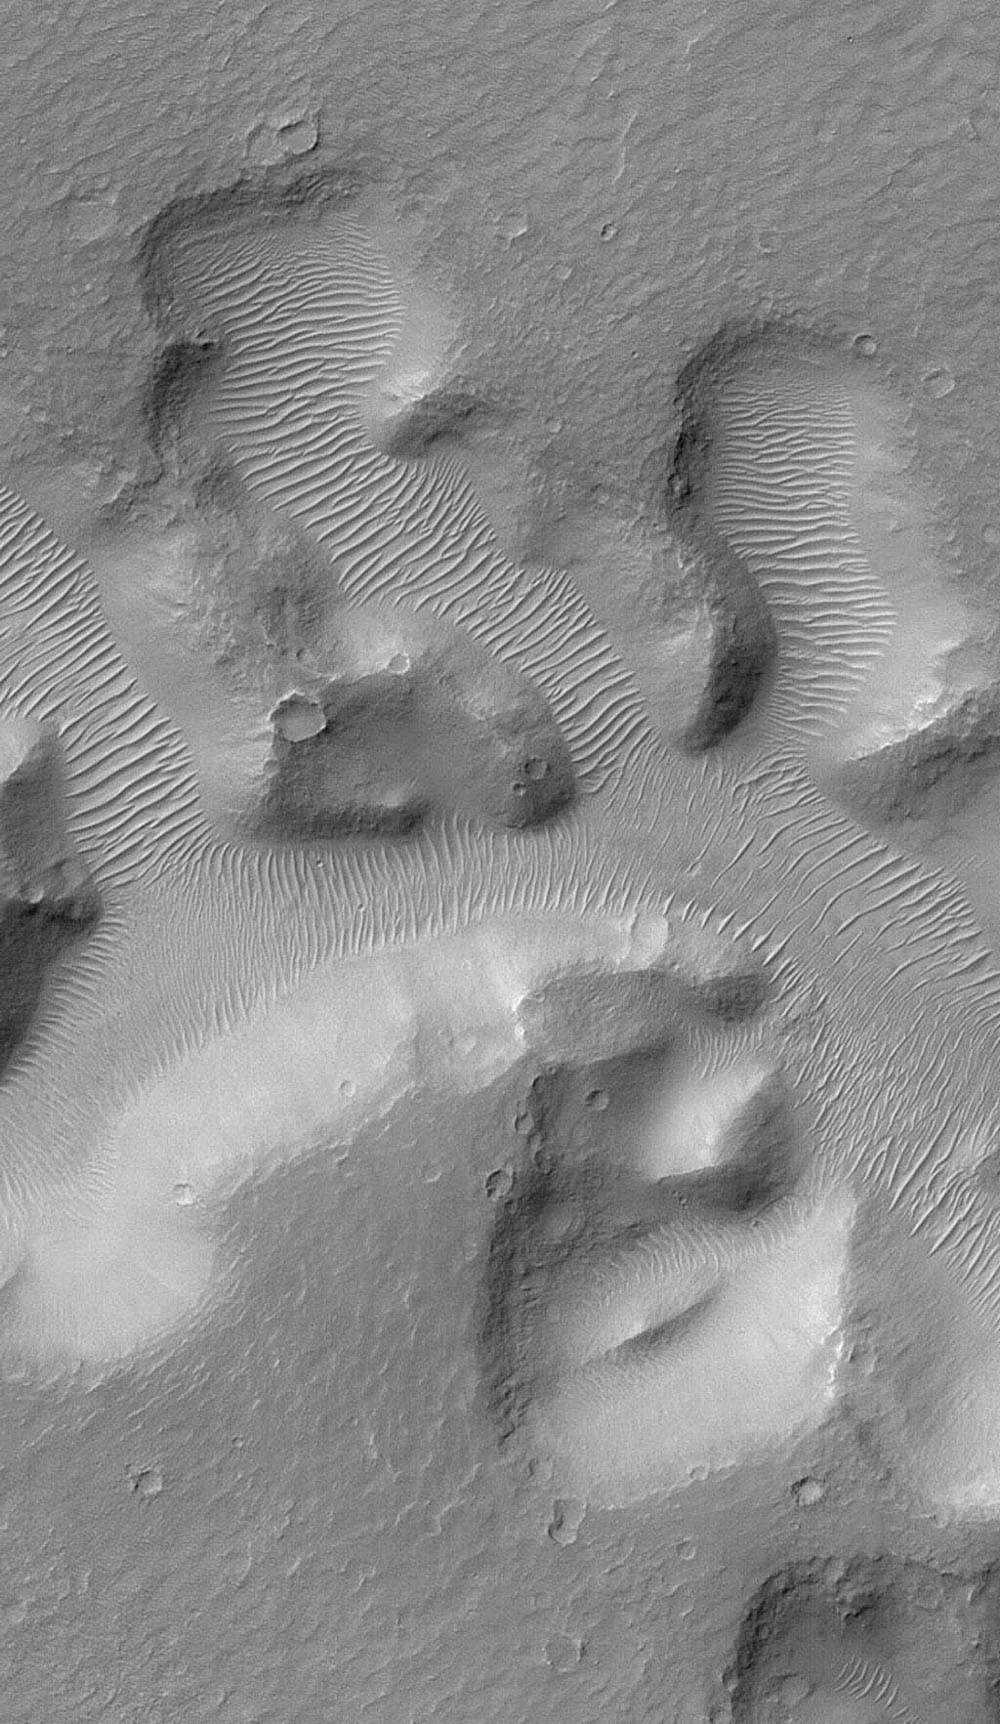 NASA's Mars Global Surveyor shows Nirgal Vallis, a narrow valley system across the martian surface near 28°S latitude, north of the large basin, Argyre. The floor of the valley system is largely covered with light-toned dunes and ripples.